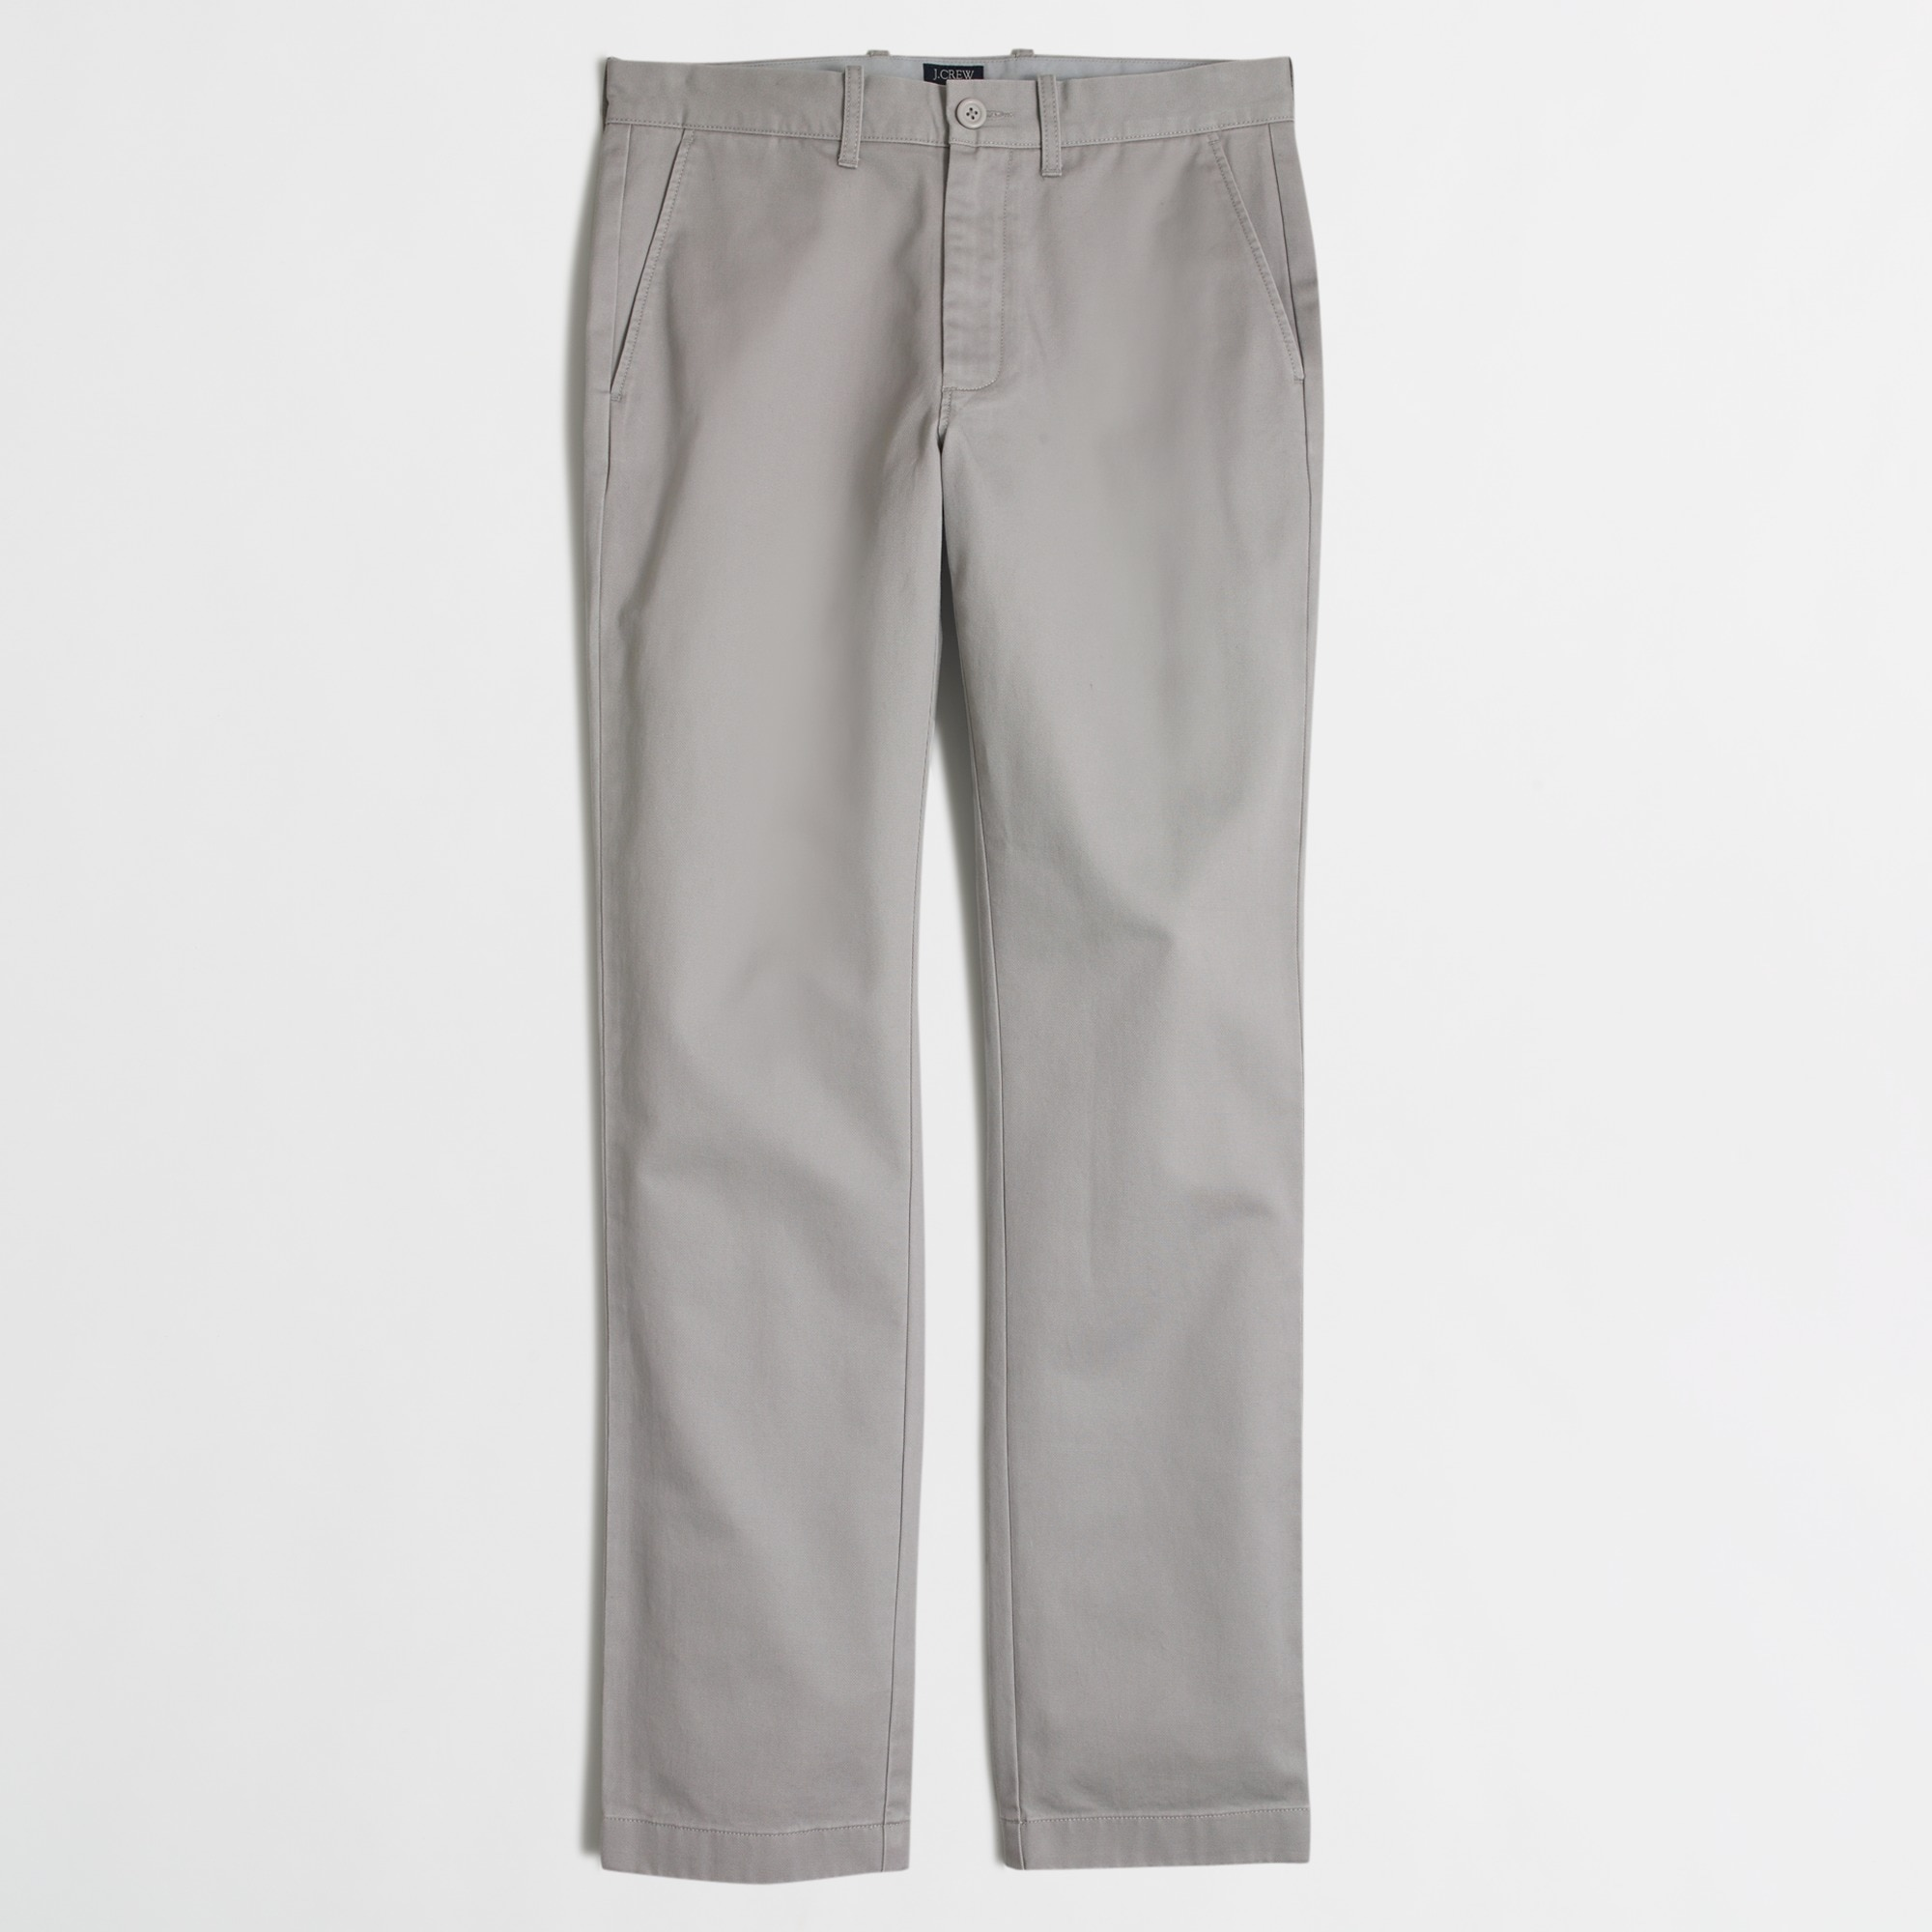 Image 5 for Straight-fit broken-in chino